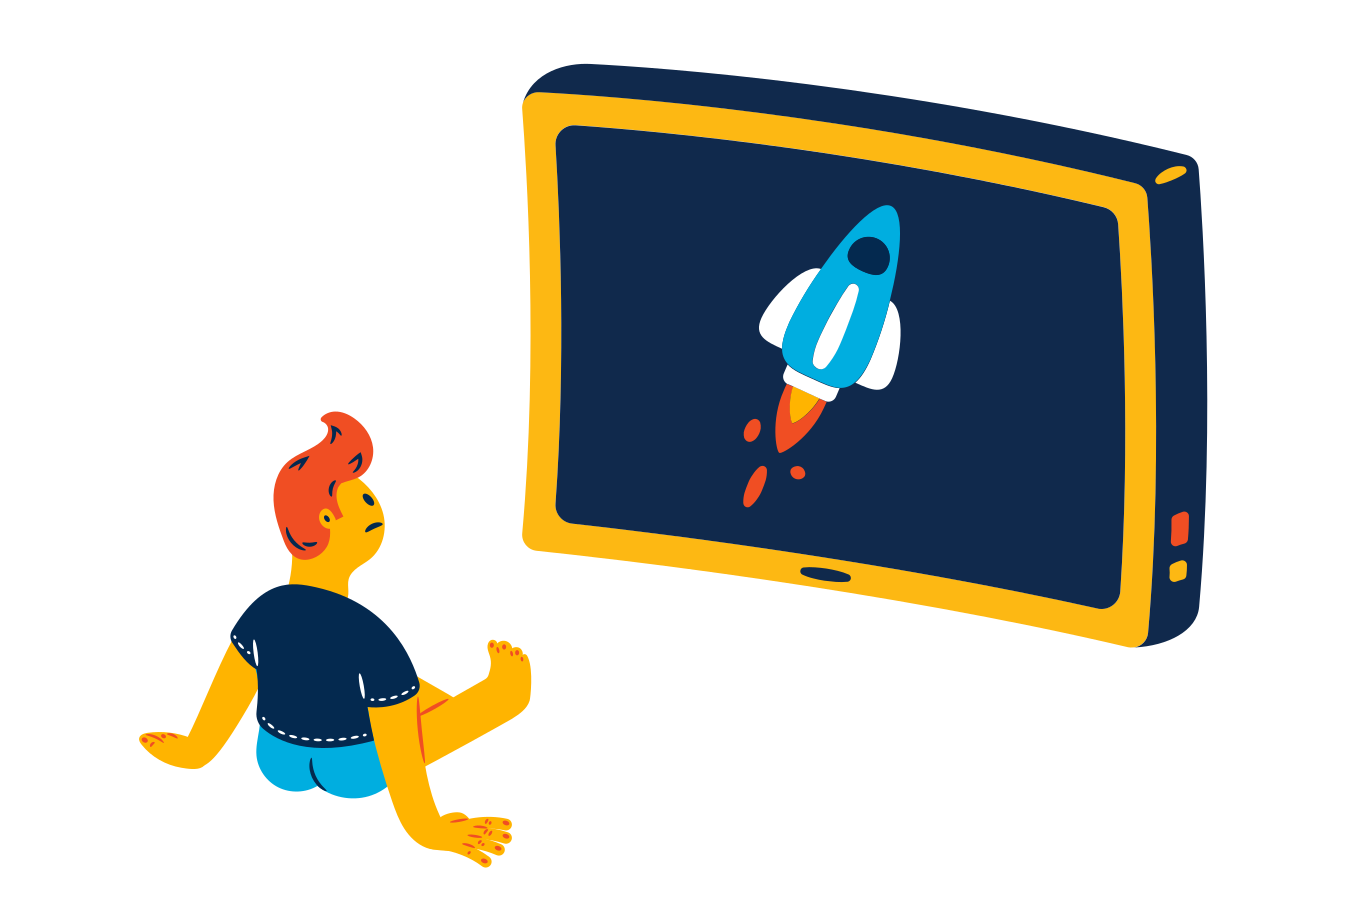 Watching rocket launch Clipart illustration in PNG, SVG